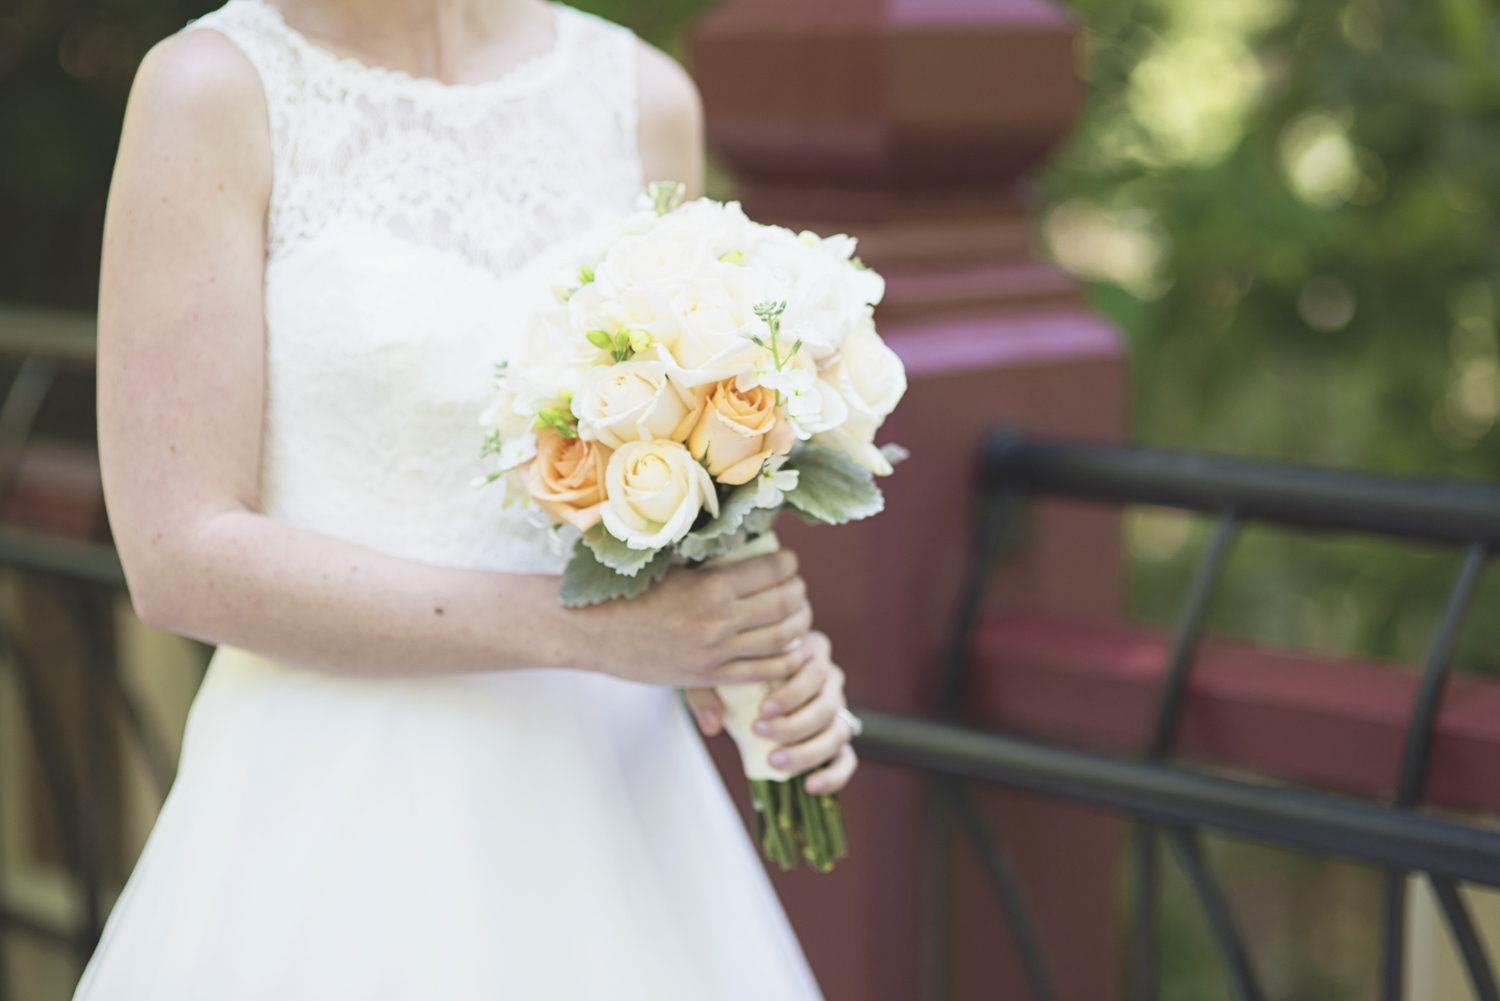 Crim Dell Bride at William and Mary Wedding |   Peach and white bridal bouquet